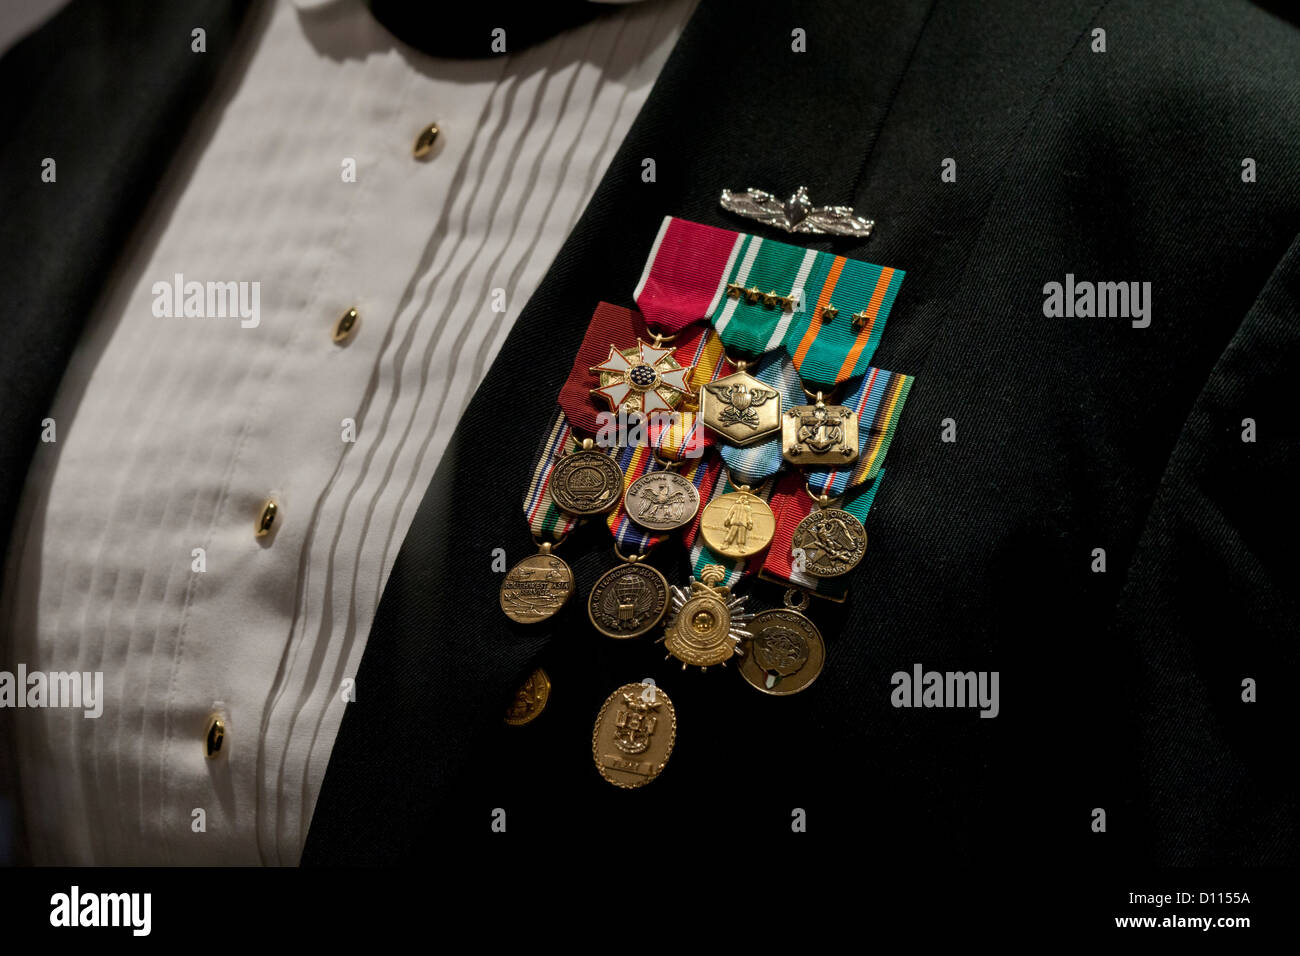 Placement of mini medals on dinner dress blues